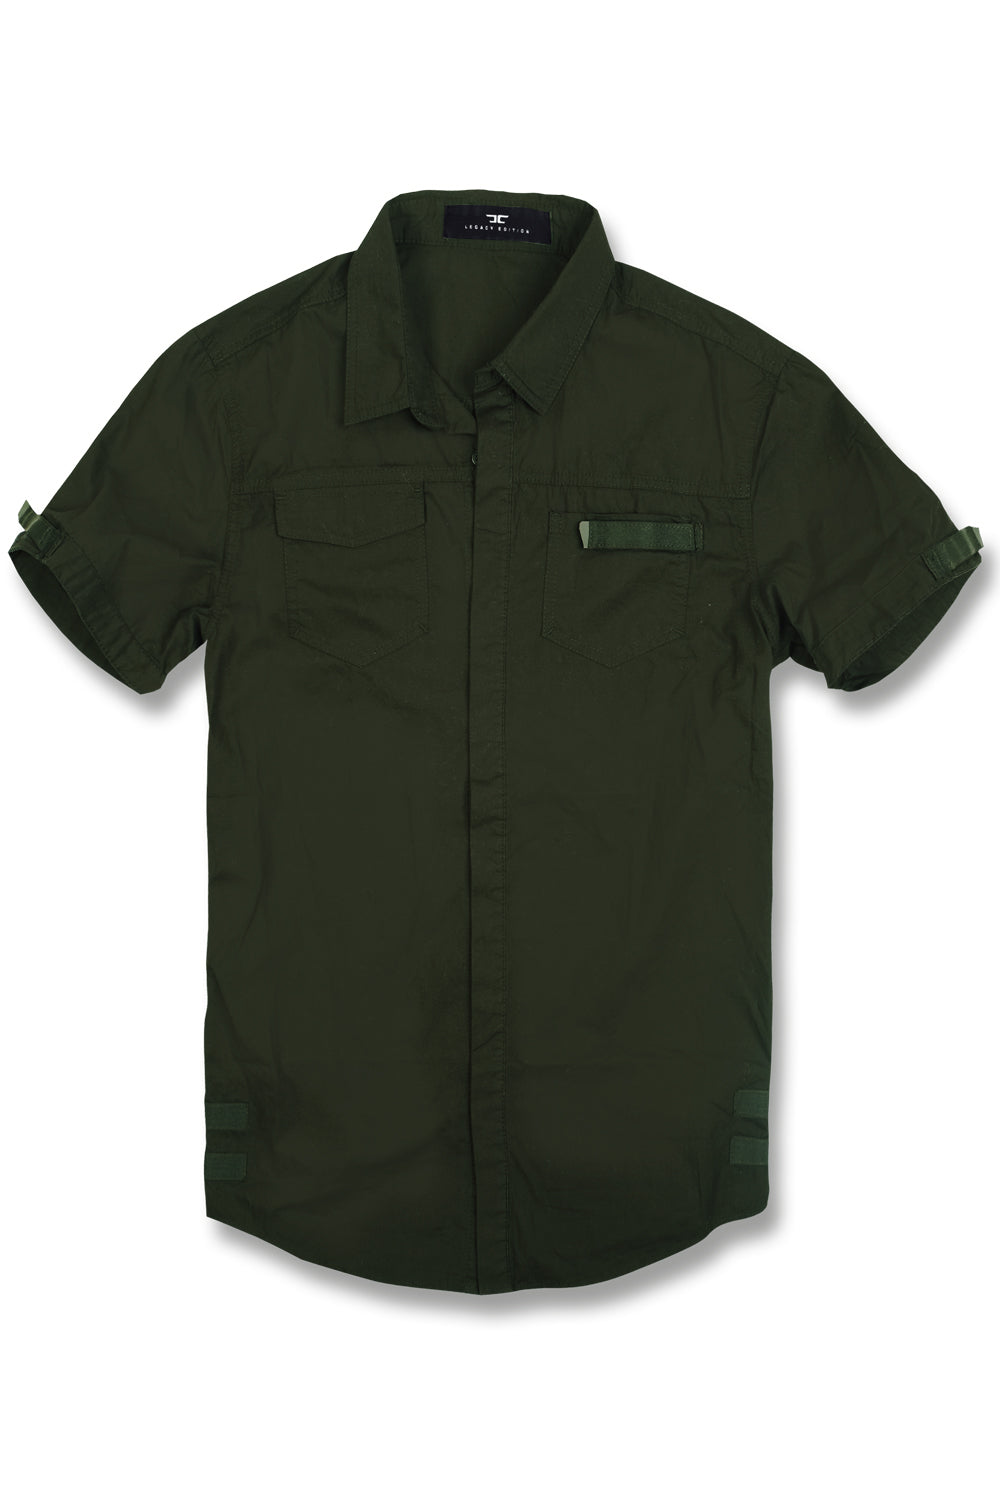 Tactical Button Up Shirt 2.0 (Army Green)